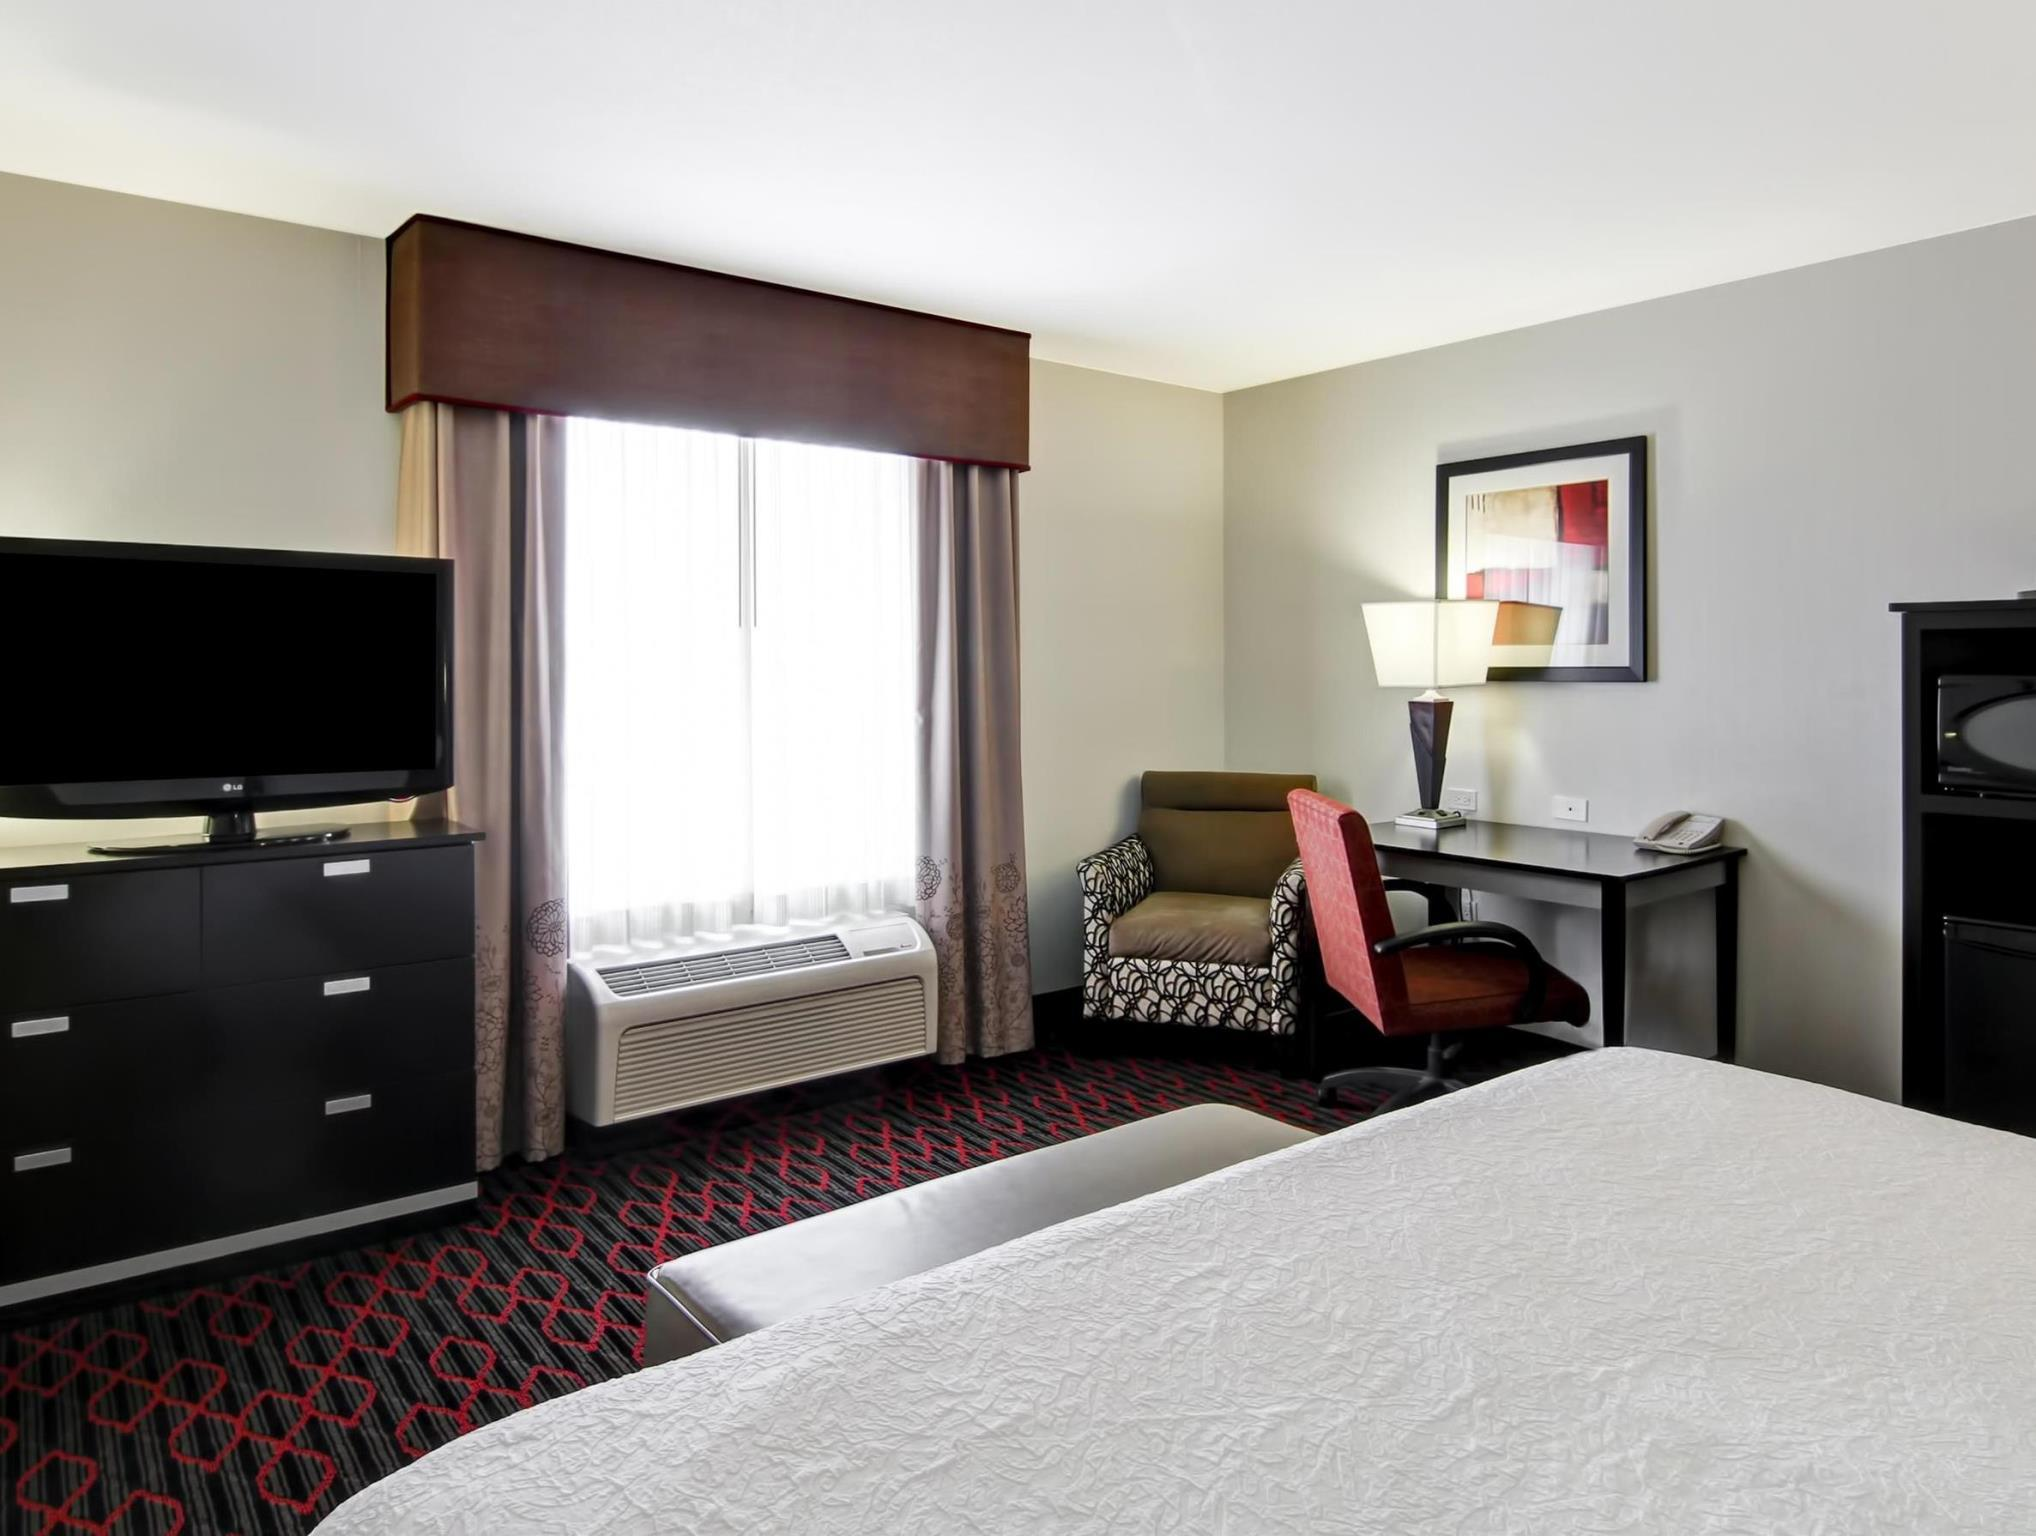 Hampton Inn and Suites Red Deer, Division No. 8